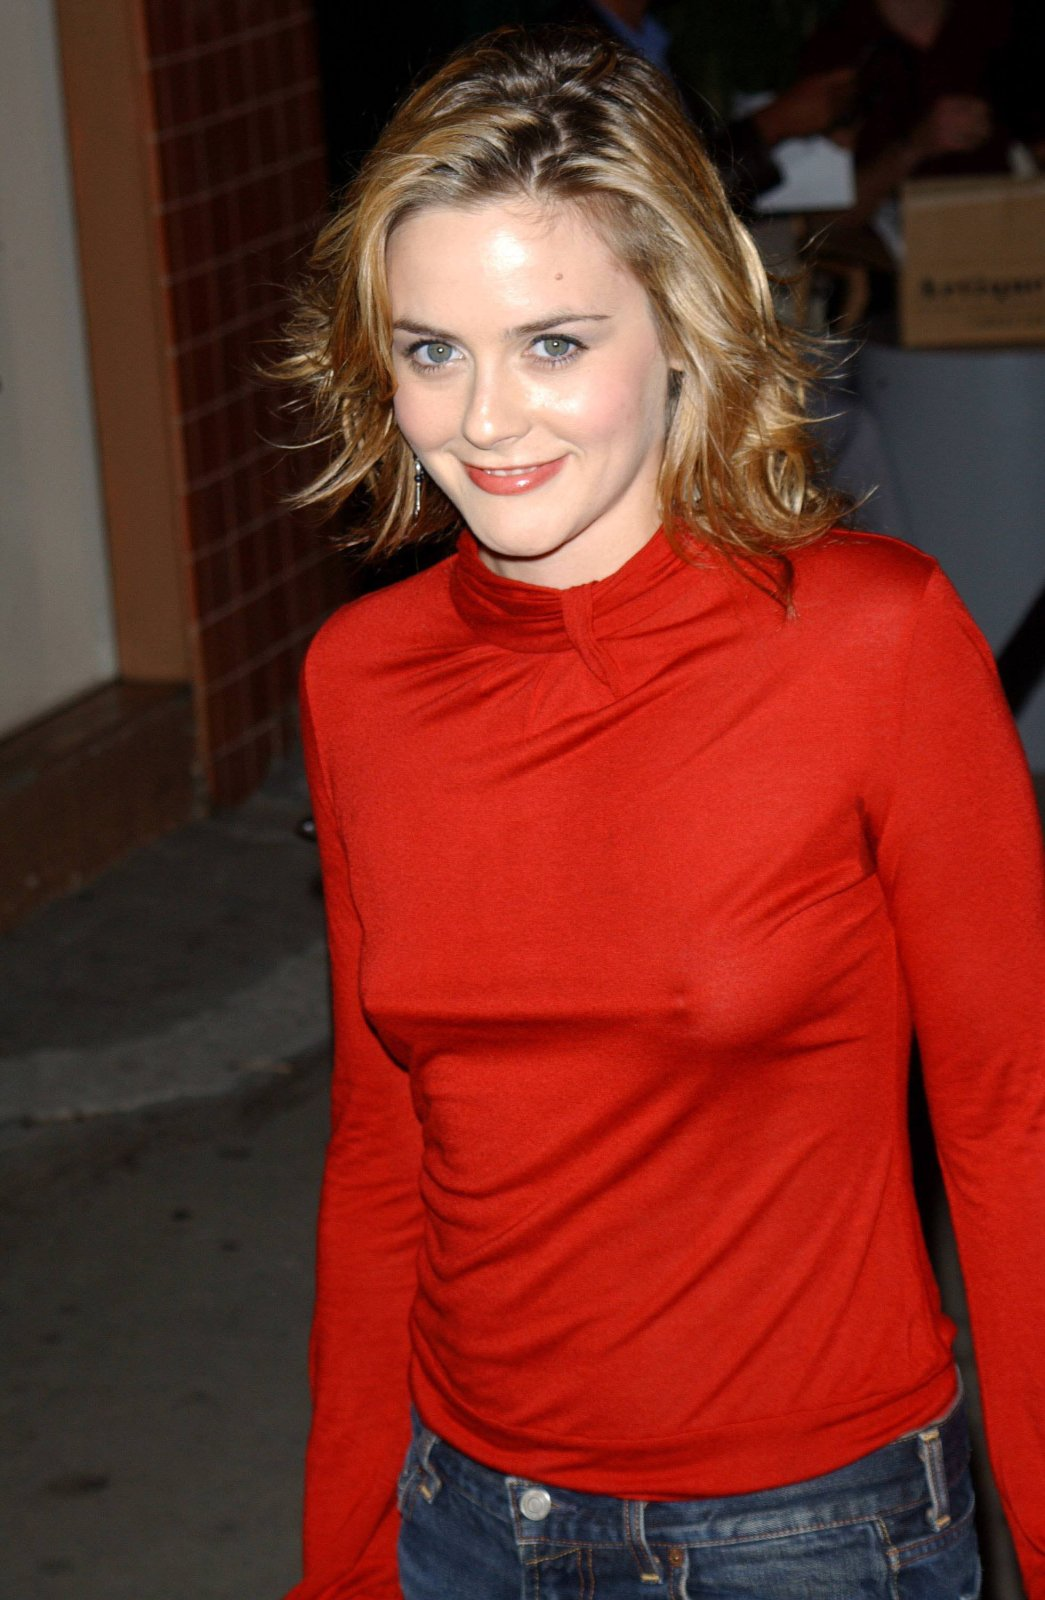 star 10 Alicia Silverstone Latest HQ Wallpapers and Hot